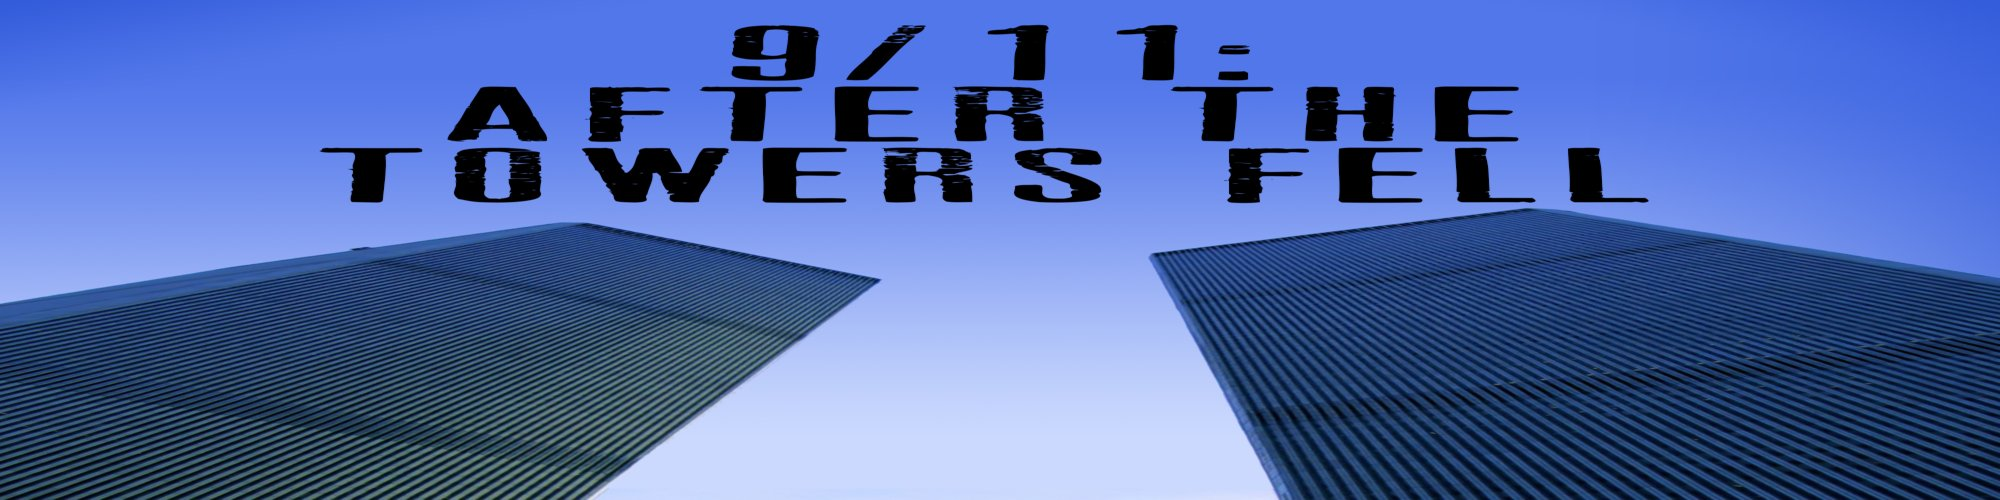 911: After The Towers Fell